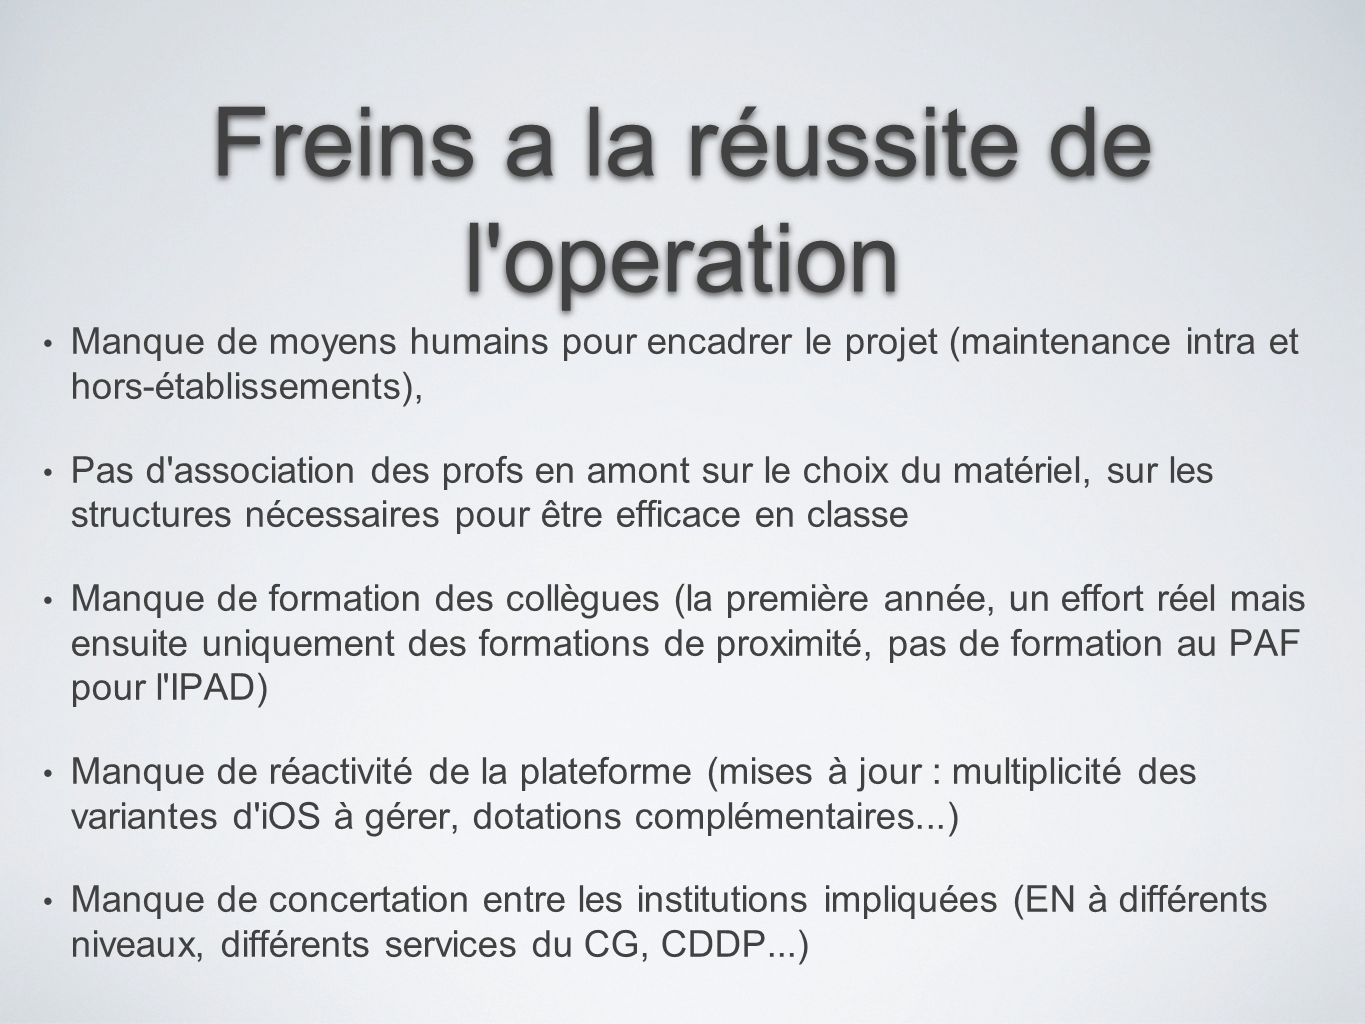 Freins a la réussite de l operation